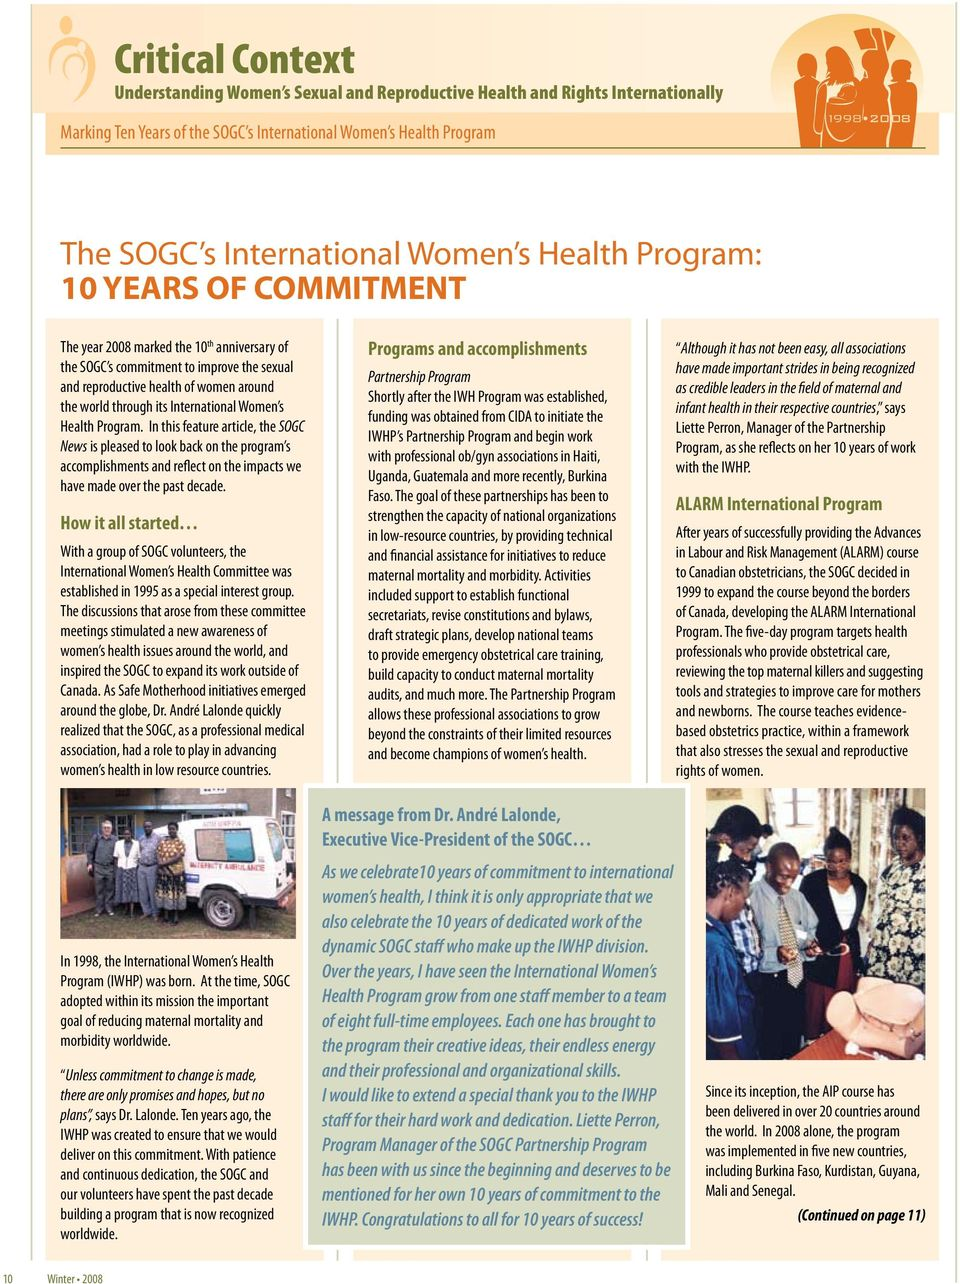 International Women s Health Program. In this feature article, the SOGC News is pleased to look back on the program s accomplishments and reflect on the impacts we have made over the past decade.